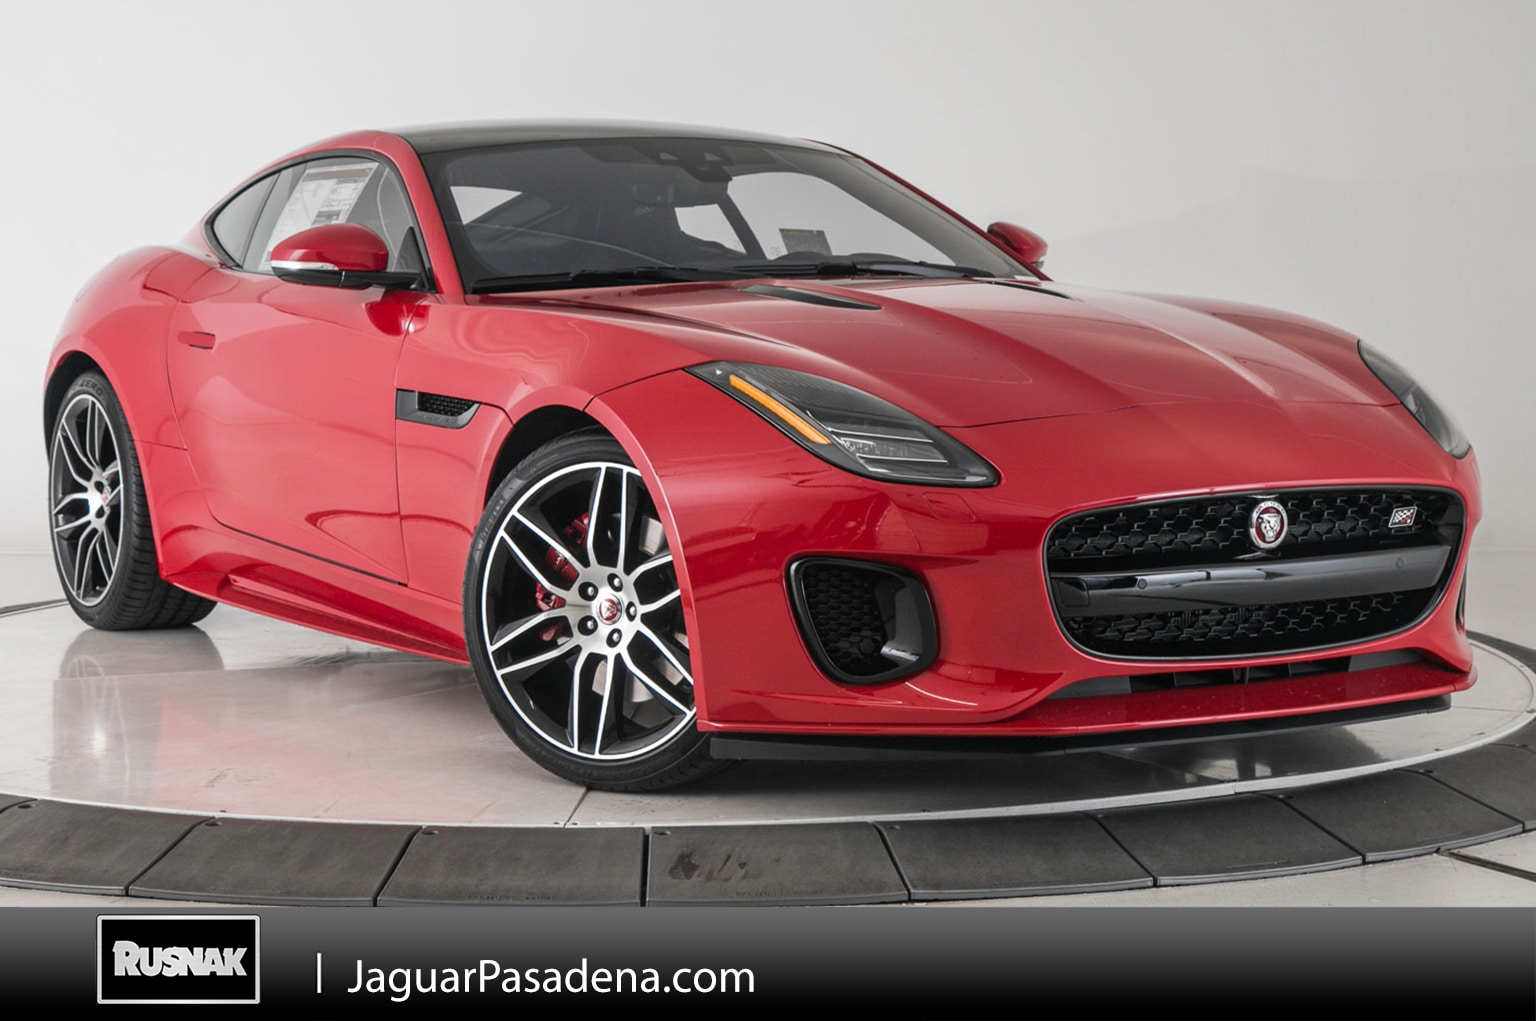 2020 Jaguar F-TYPE Coupe